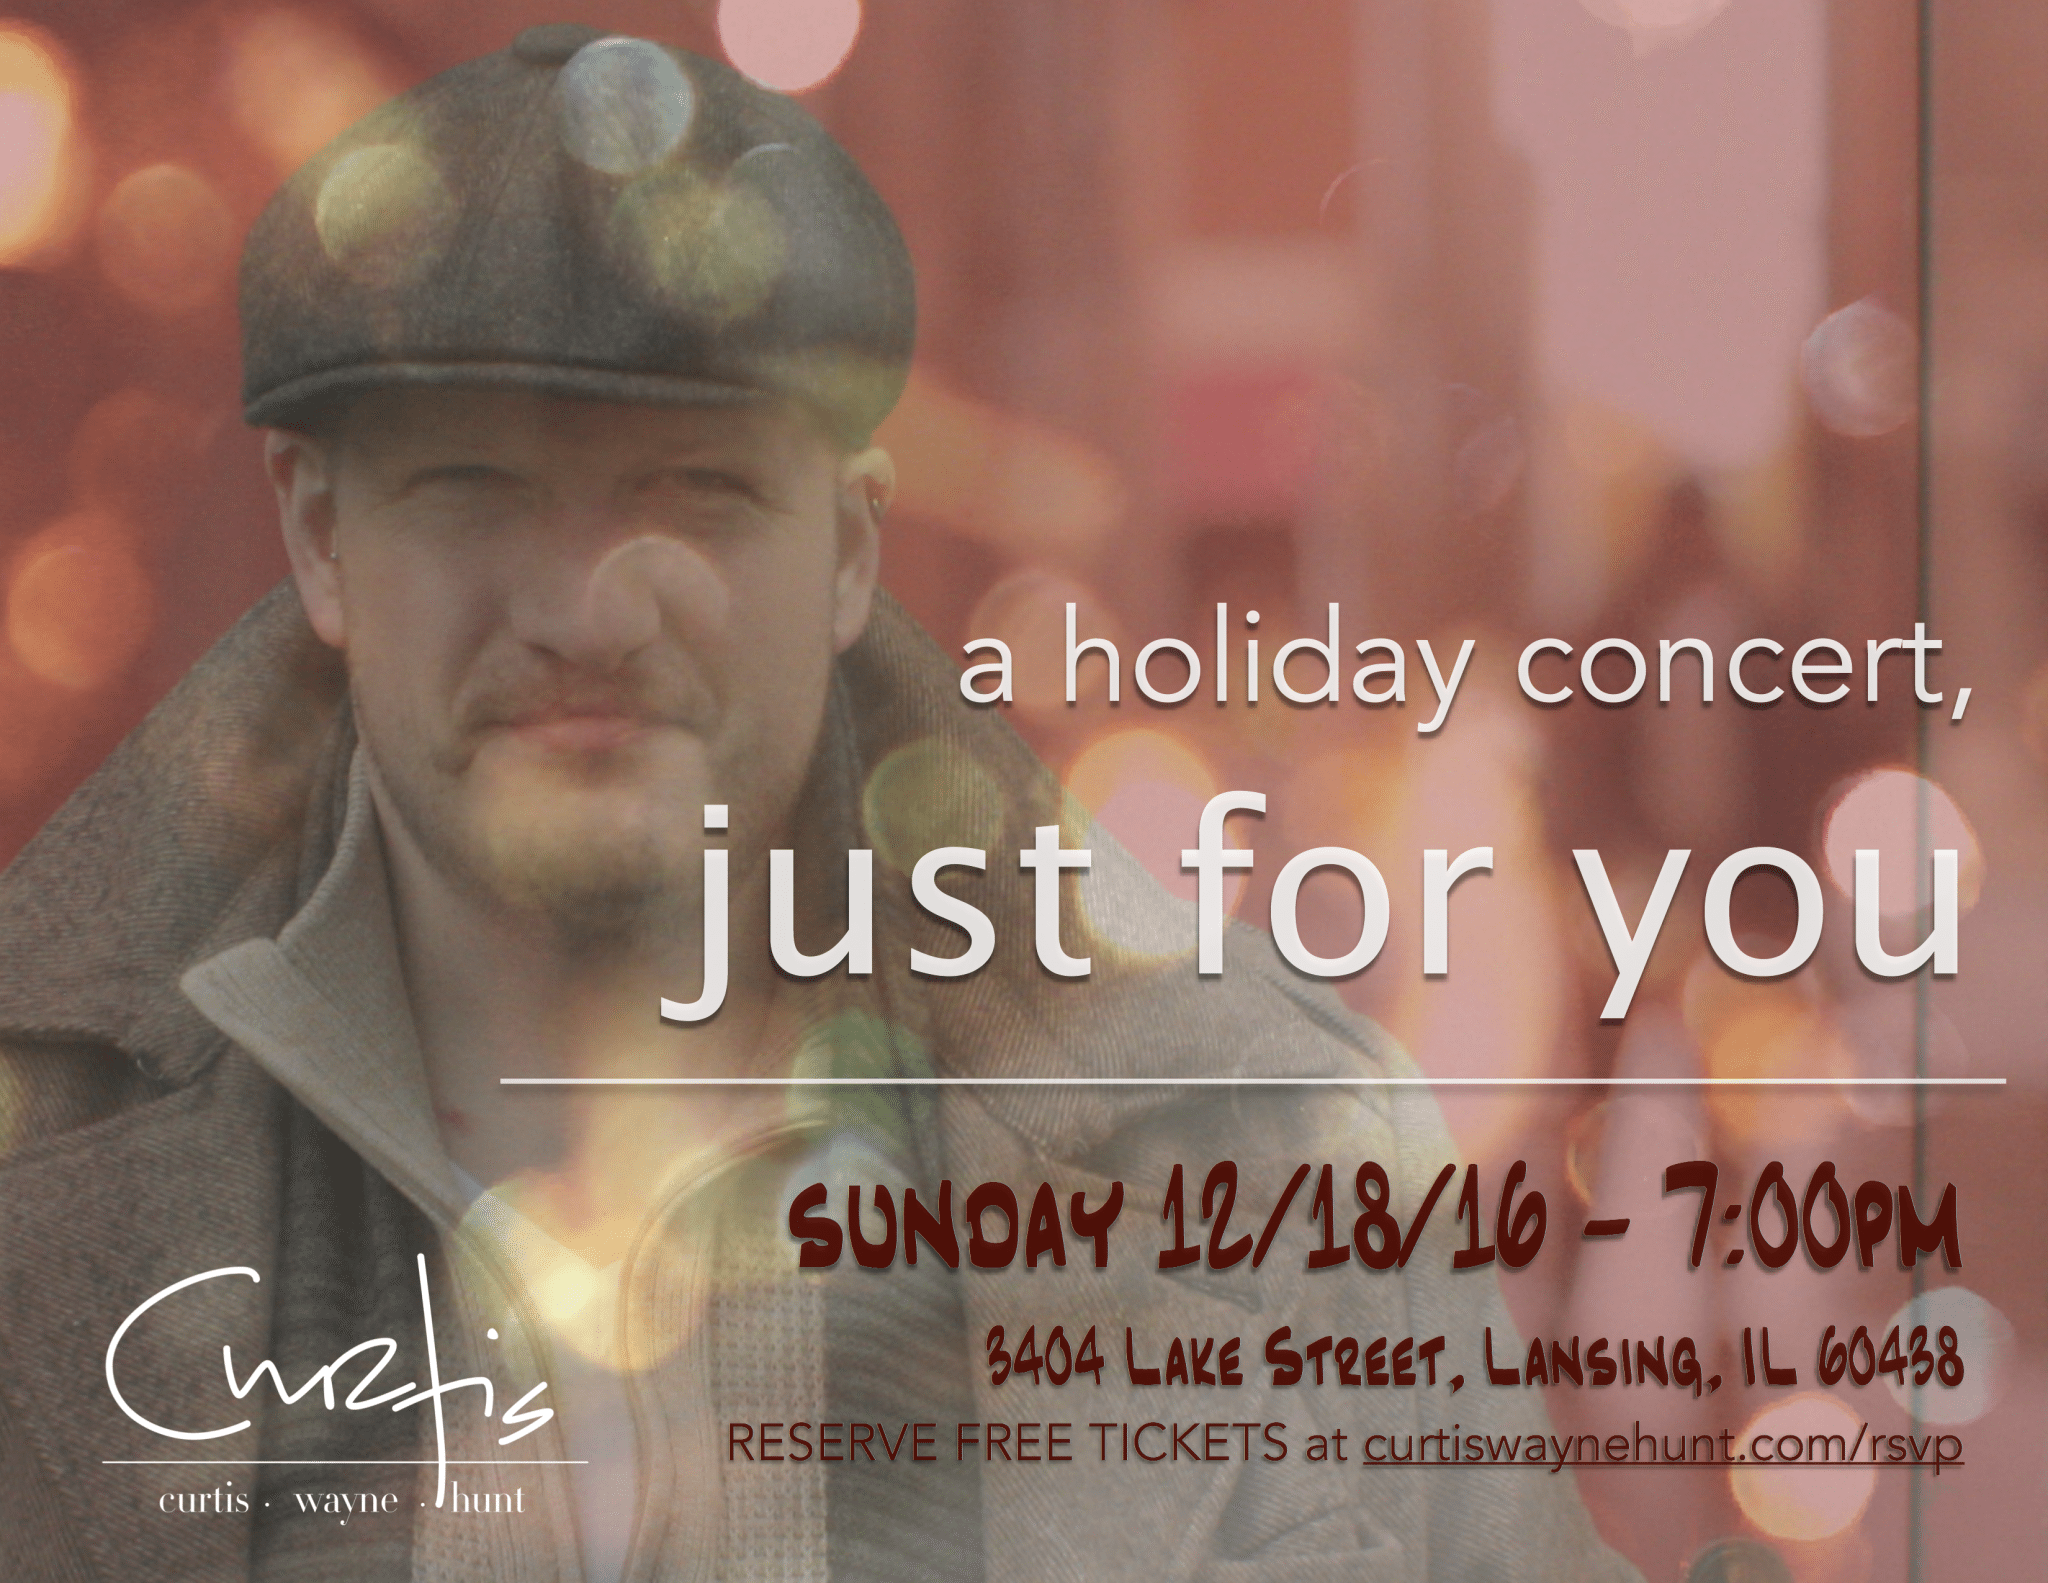 Just For You, 2016 Holiday Concert!